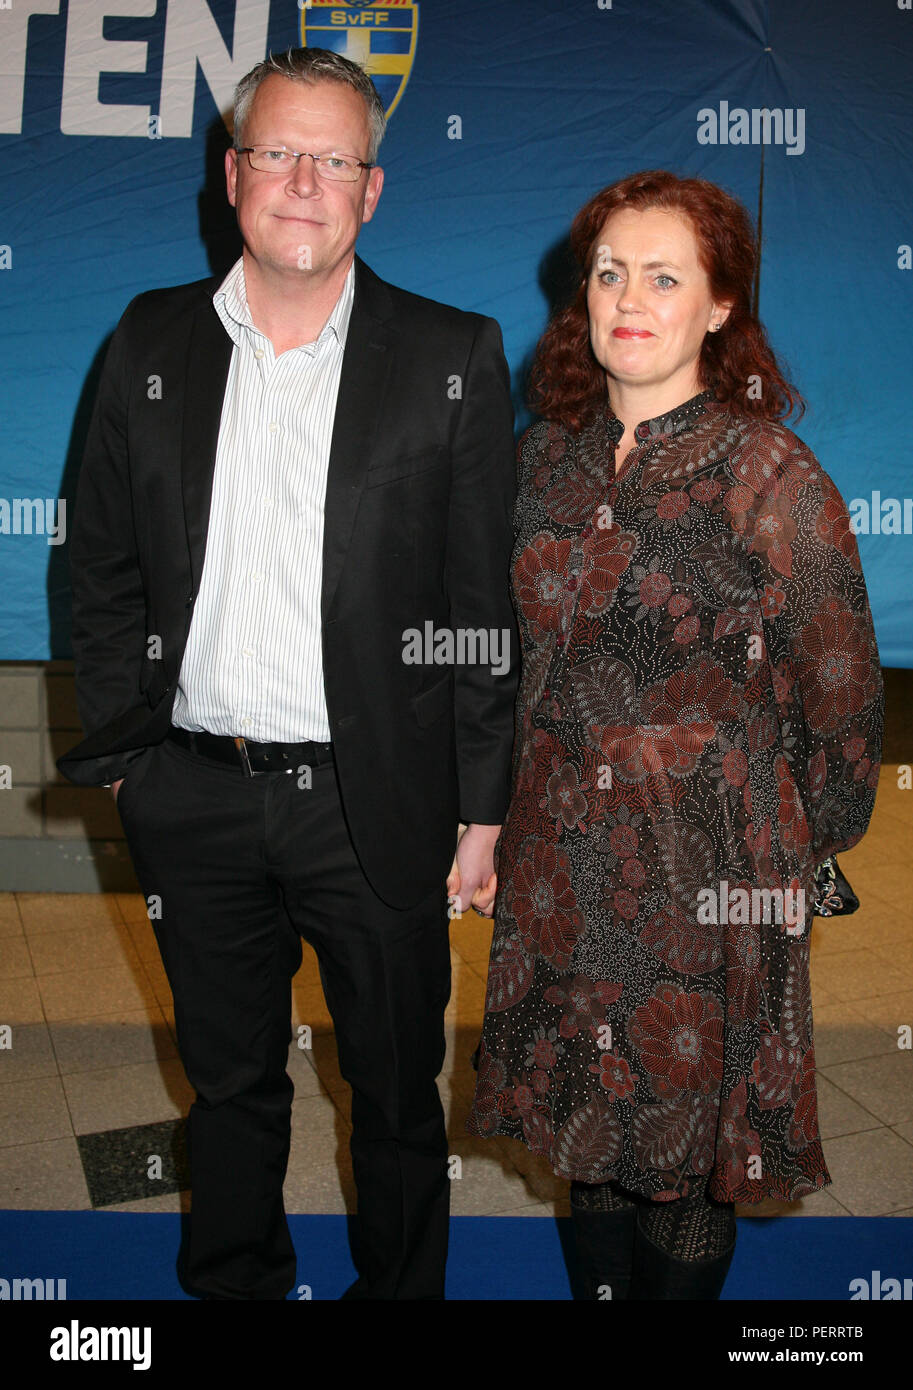 JAN ANDERSSON National coach for football team with wife Ulrika at the Annual football gala 2012 - Stock Image